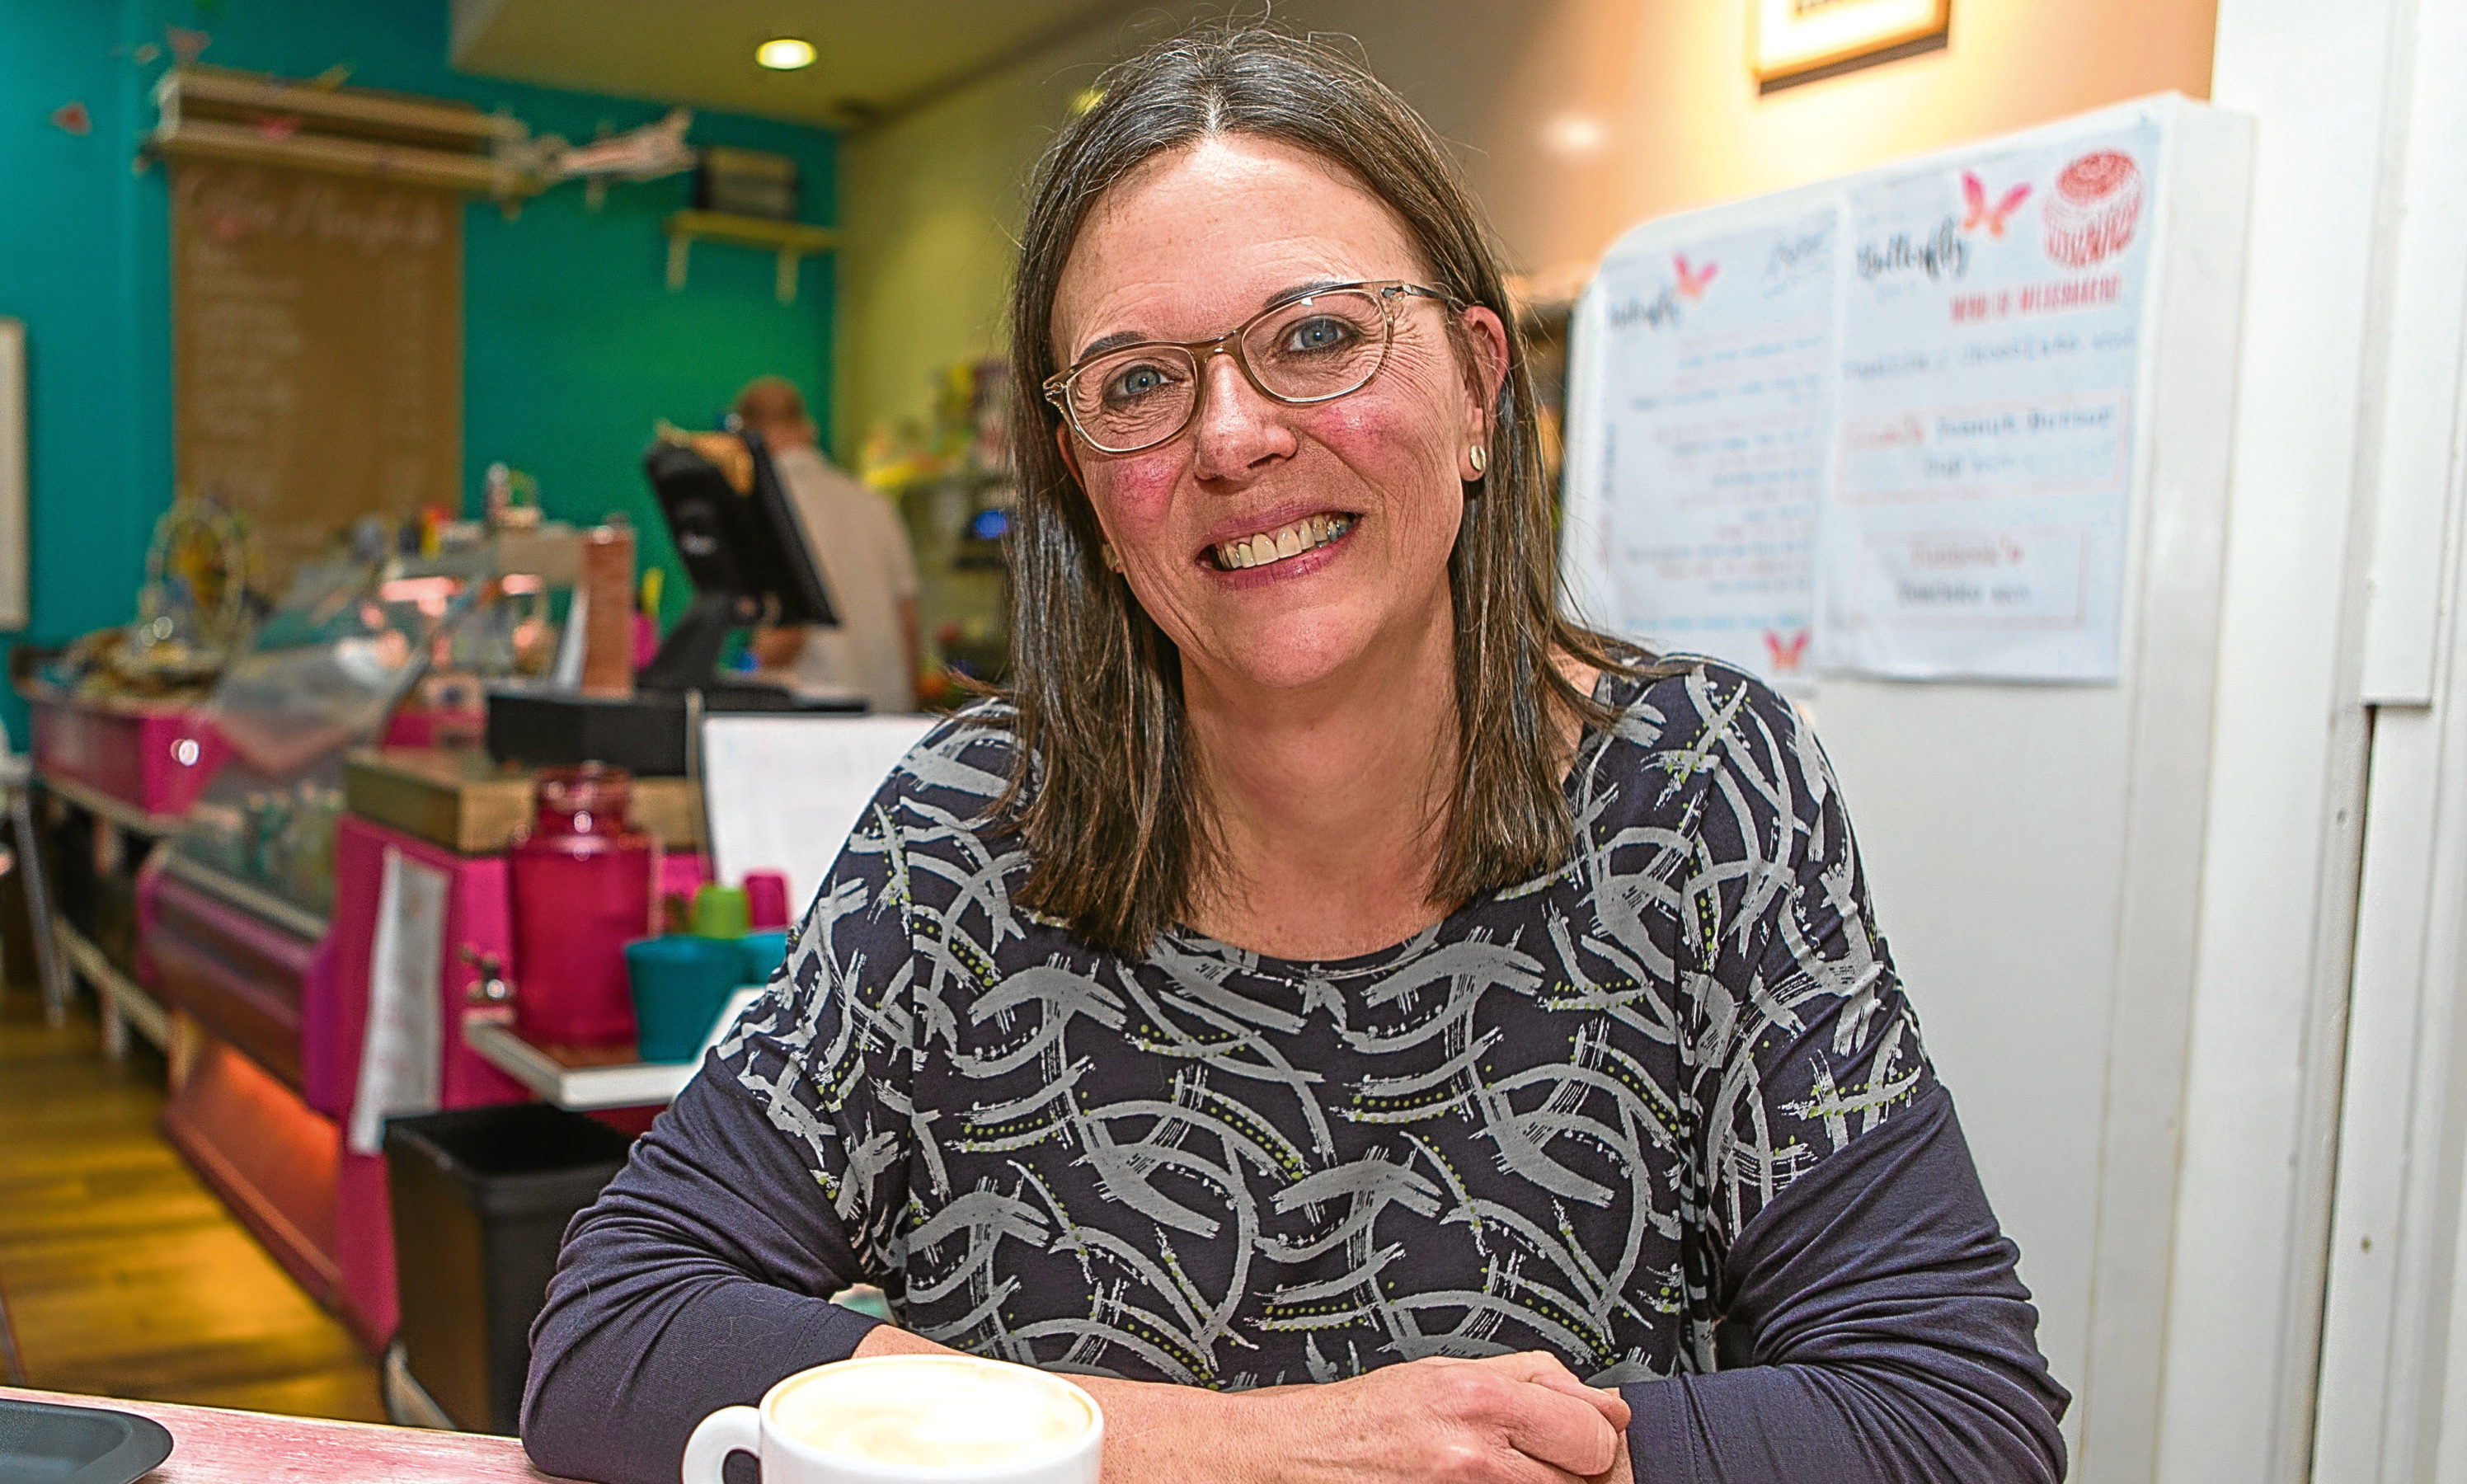 Nurture Parents co-ordinator Ali Millican (55) at Butterfly Cafe, where the group plans to meet on Wednesday mornings to help new parents